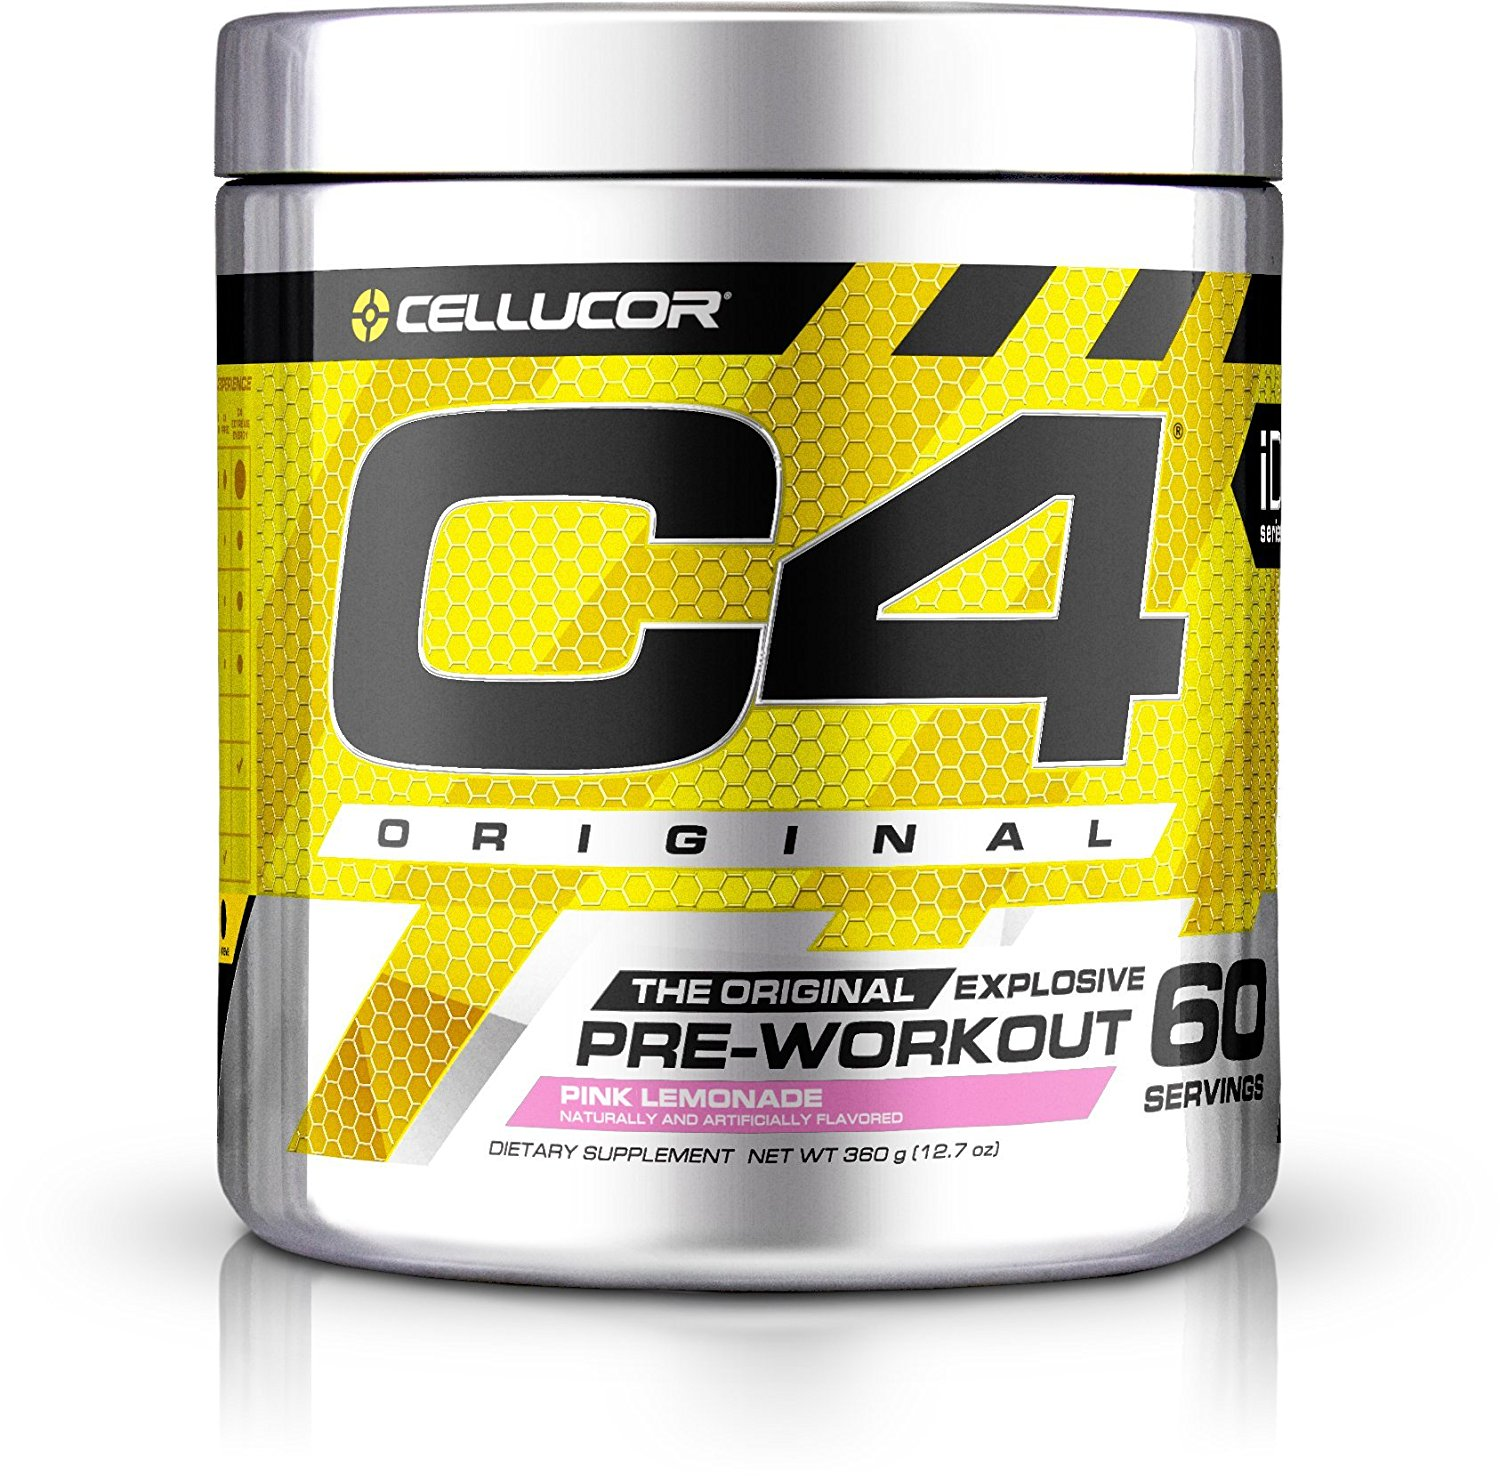 What's A Rest Day Peter Lammi Cellucor C4 Pre-Workout Recommendation - WhatsARestDay